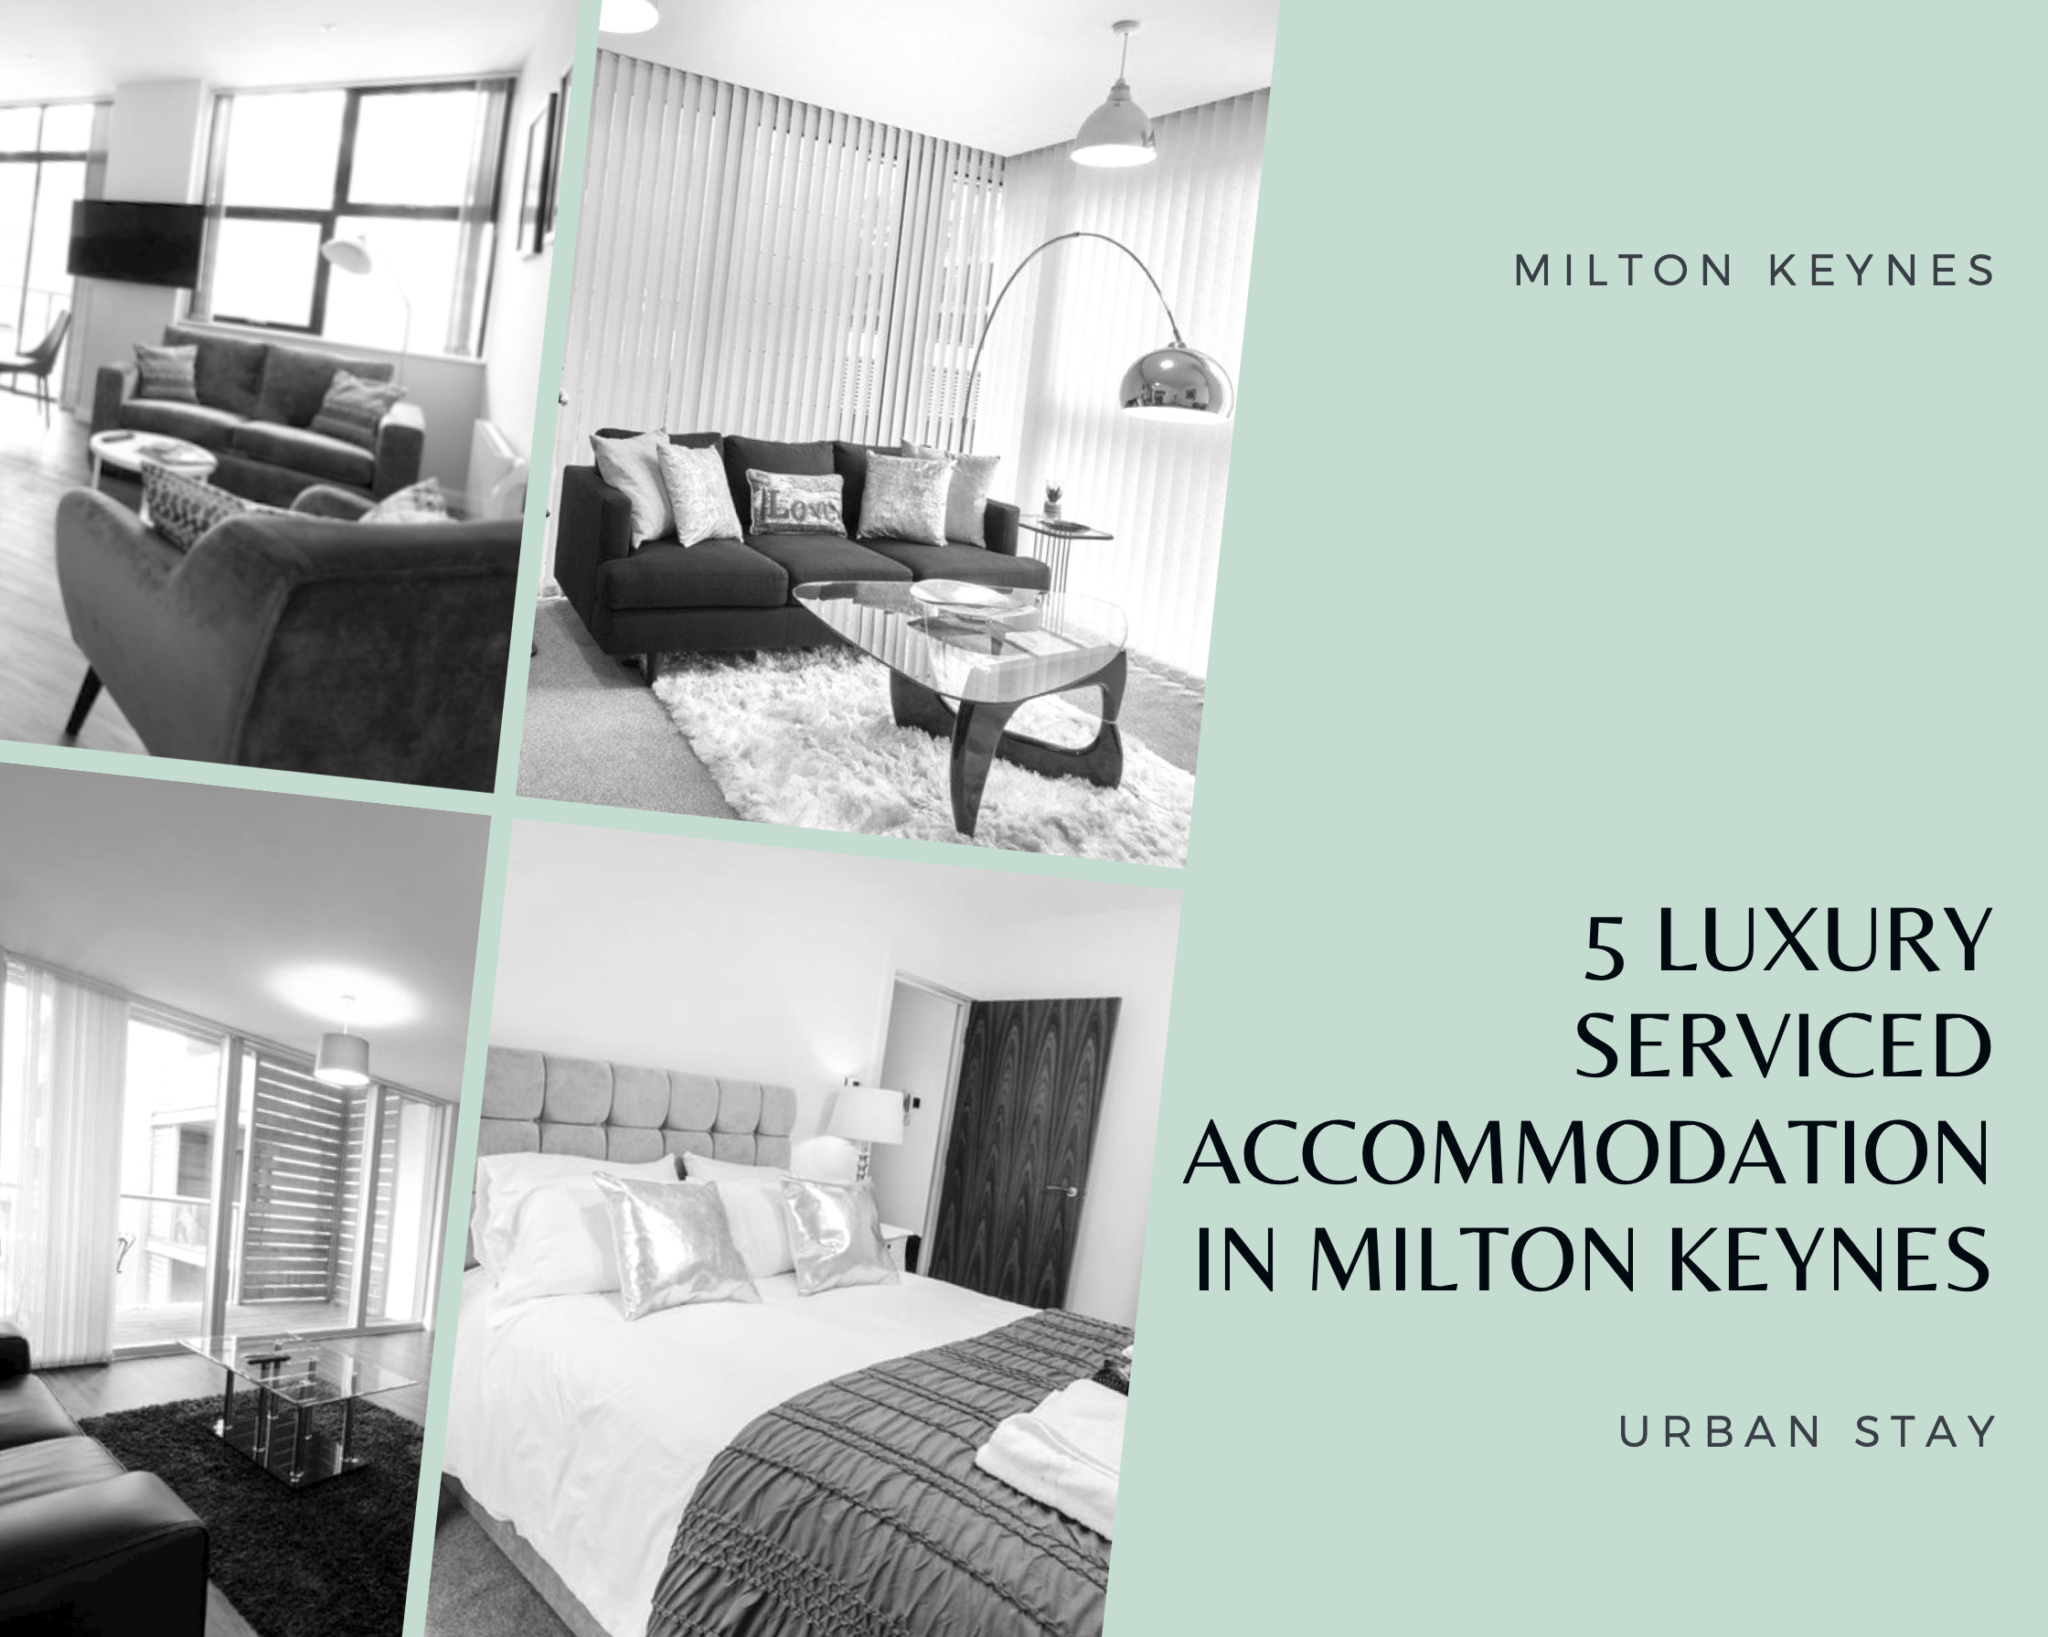 If you're looking to stay in Grandeur accommodation while you stay in Milton Keynes, one of these top 5 Luxury apartments are your perfect place to stay in!